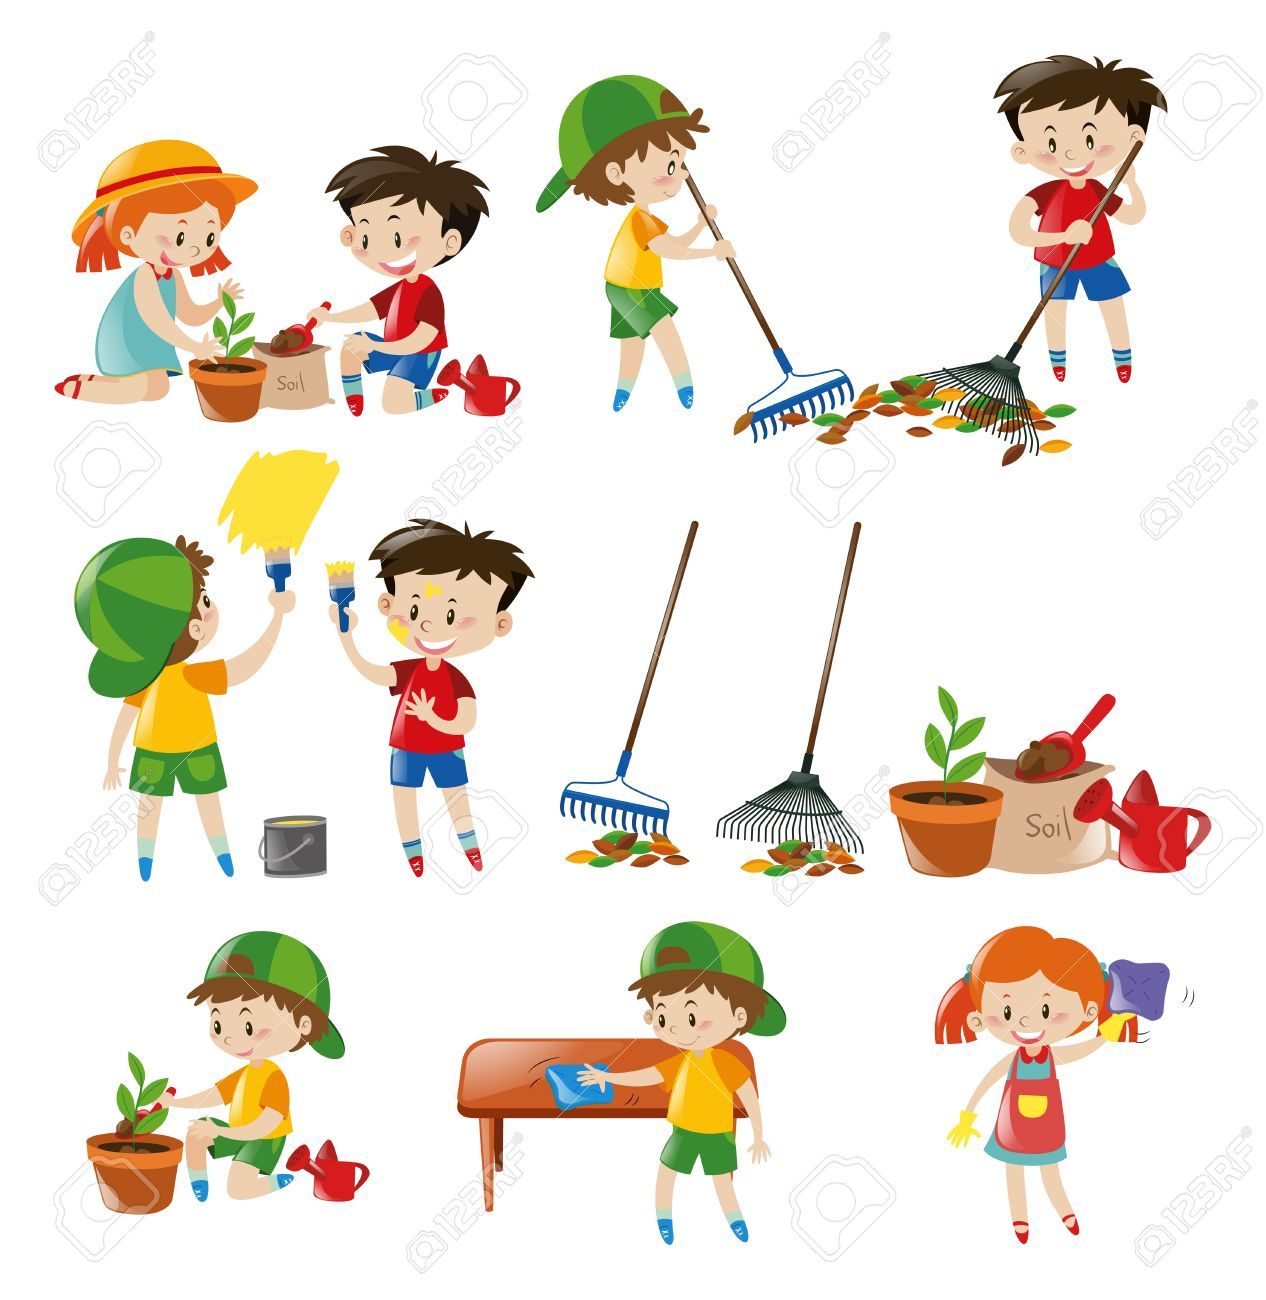 hight resolution of children doing different chores illustration stock vector 63490607